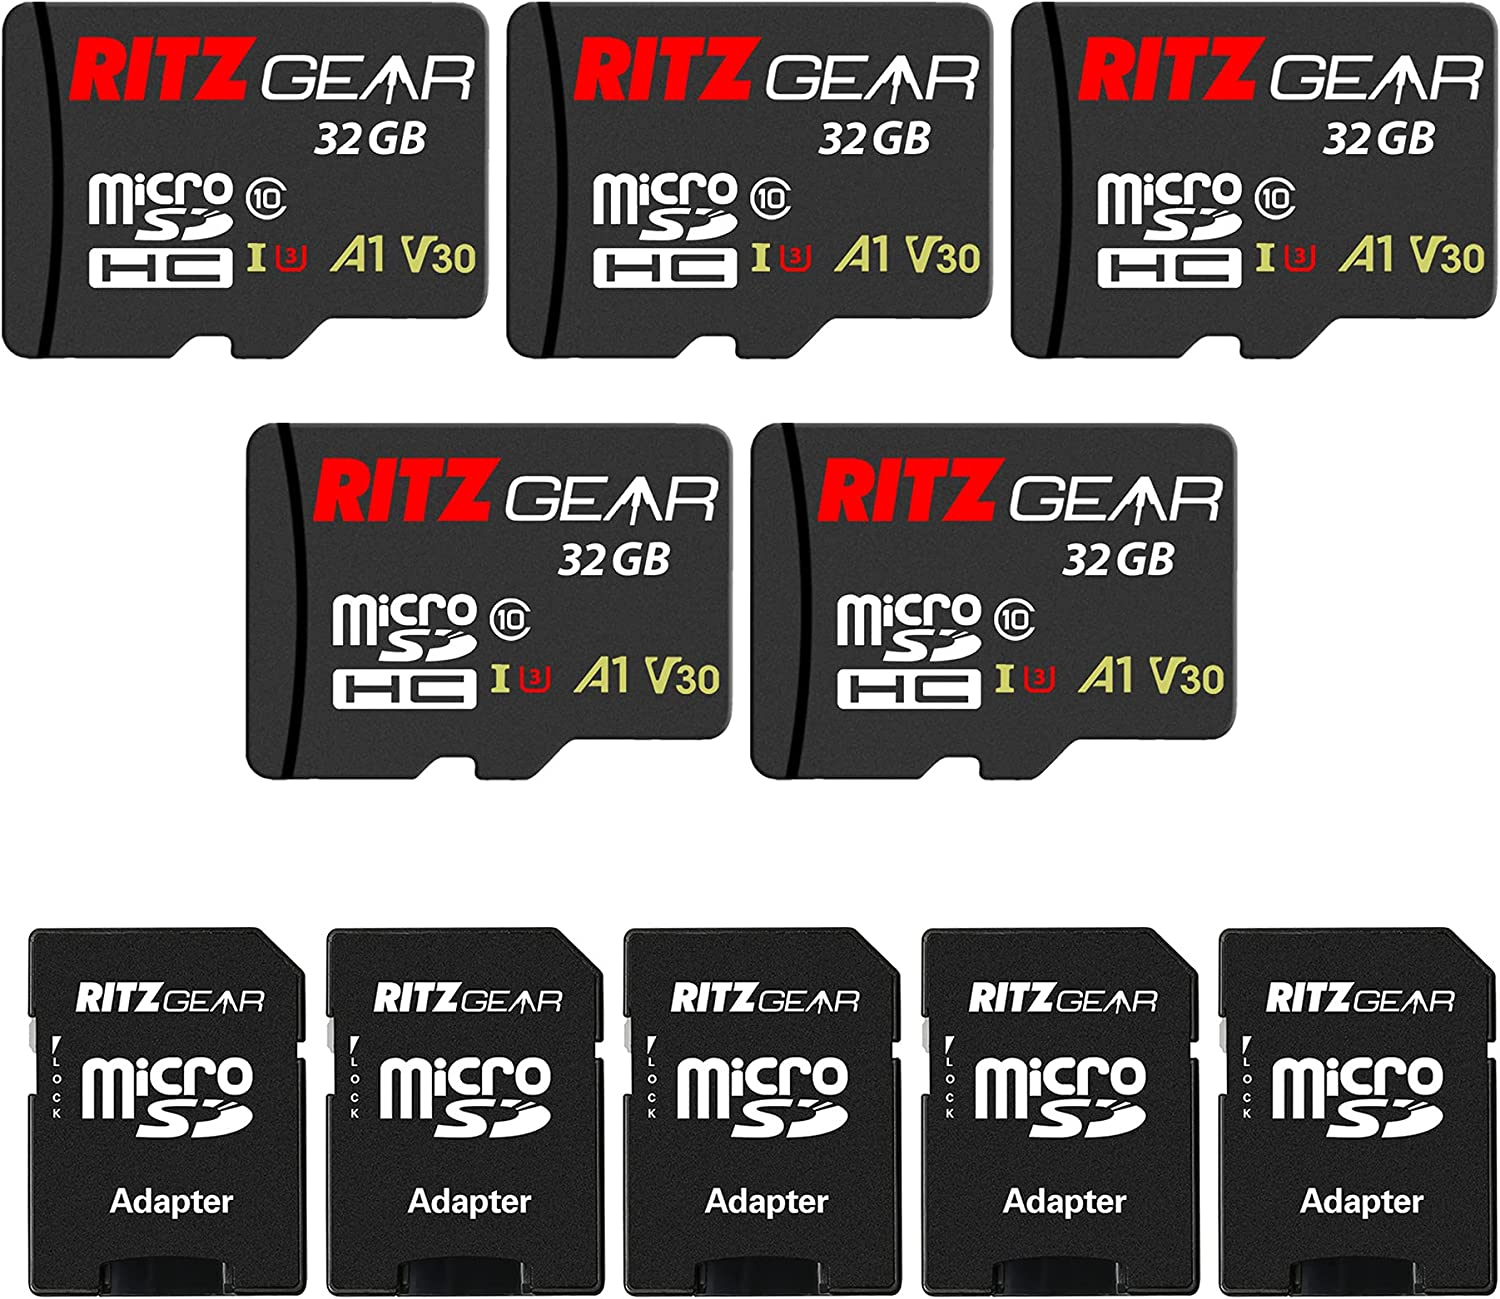 RitzGear Extreme Performance 32GB MicroSDHC Memory Card (5-Pack), Class10 V30 A1 U3 UHS1, Micro SD Card Designed for SD Devices That can Capture Full HD, 3D, and 4K Video as Well as raw Photography